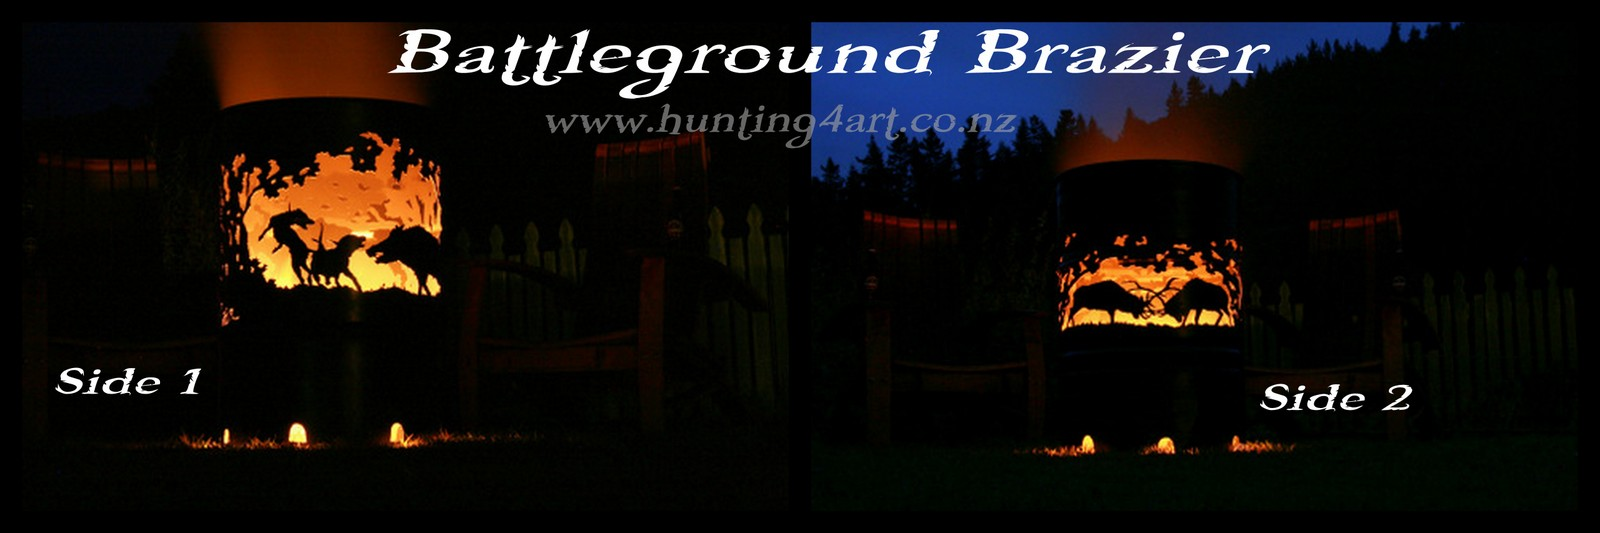 BATTLEGROUND BRAZIER